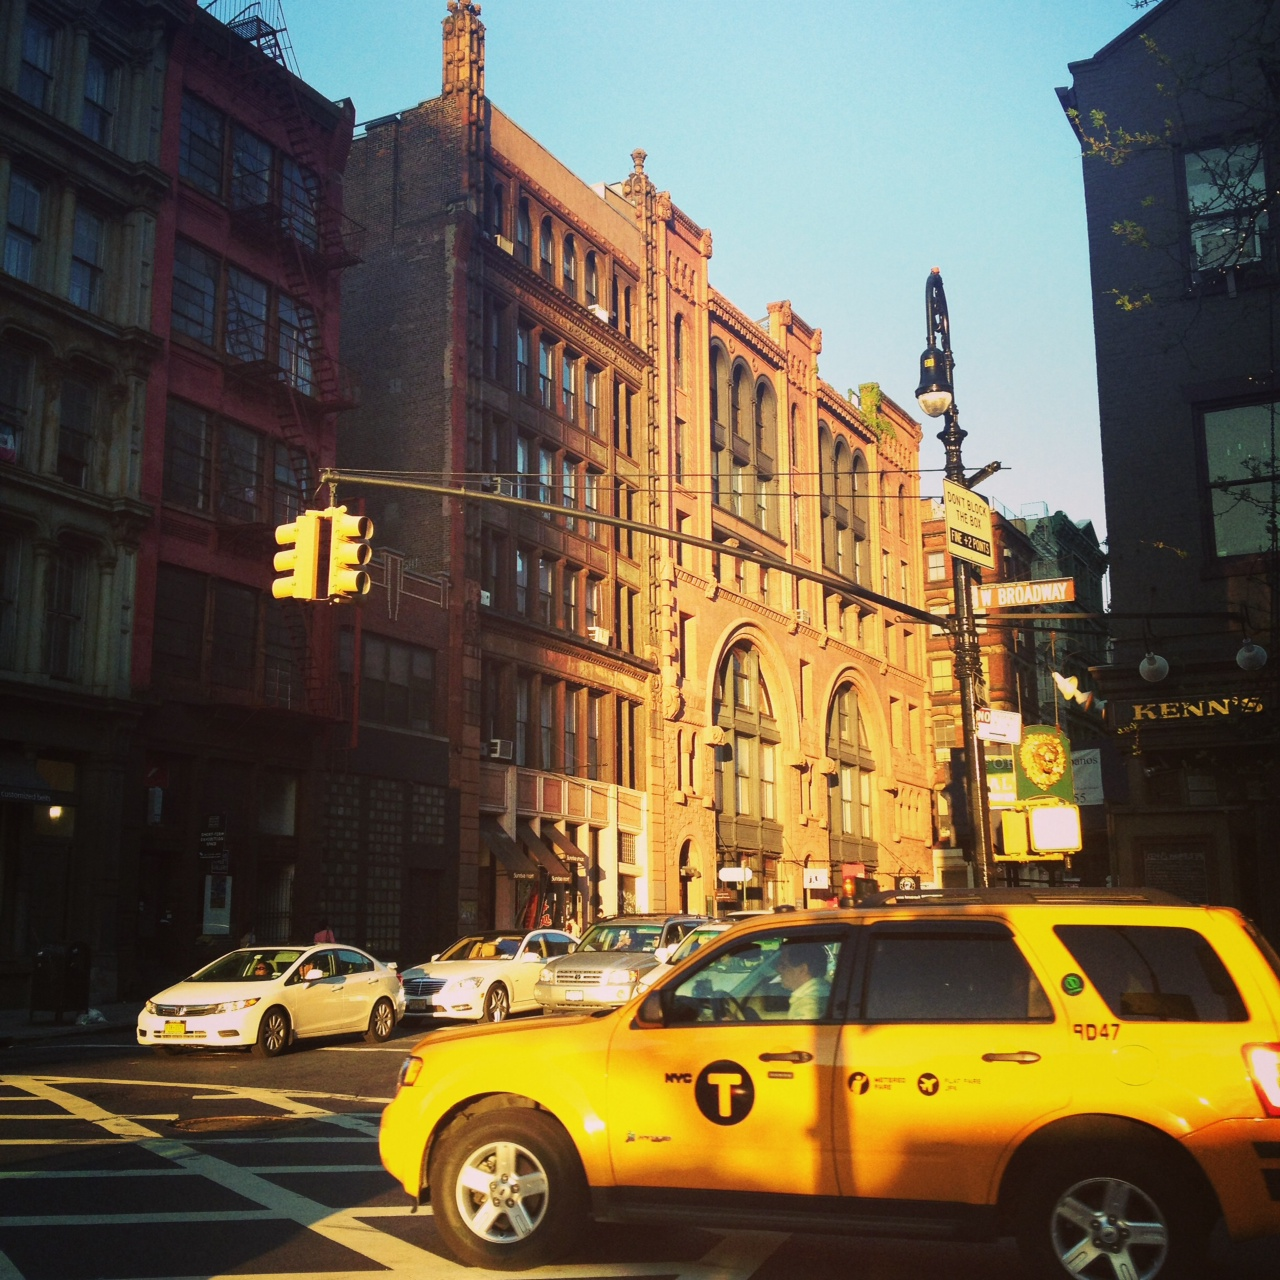 NYC - WhatWouldGwynethDo